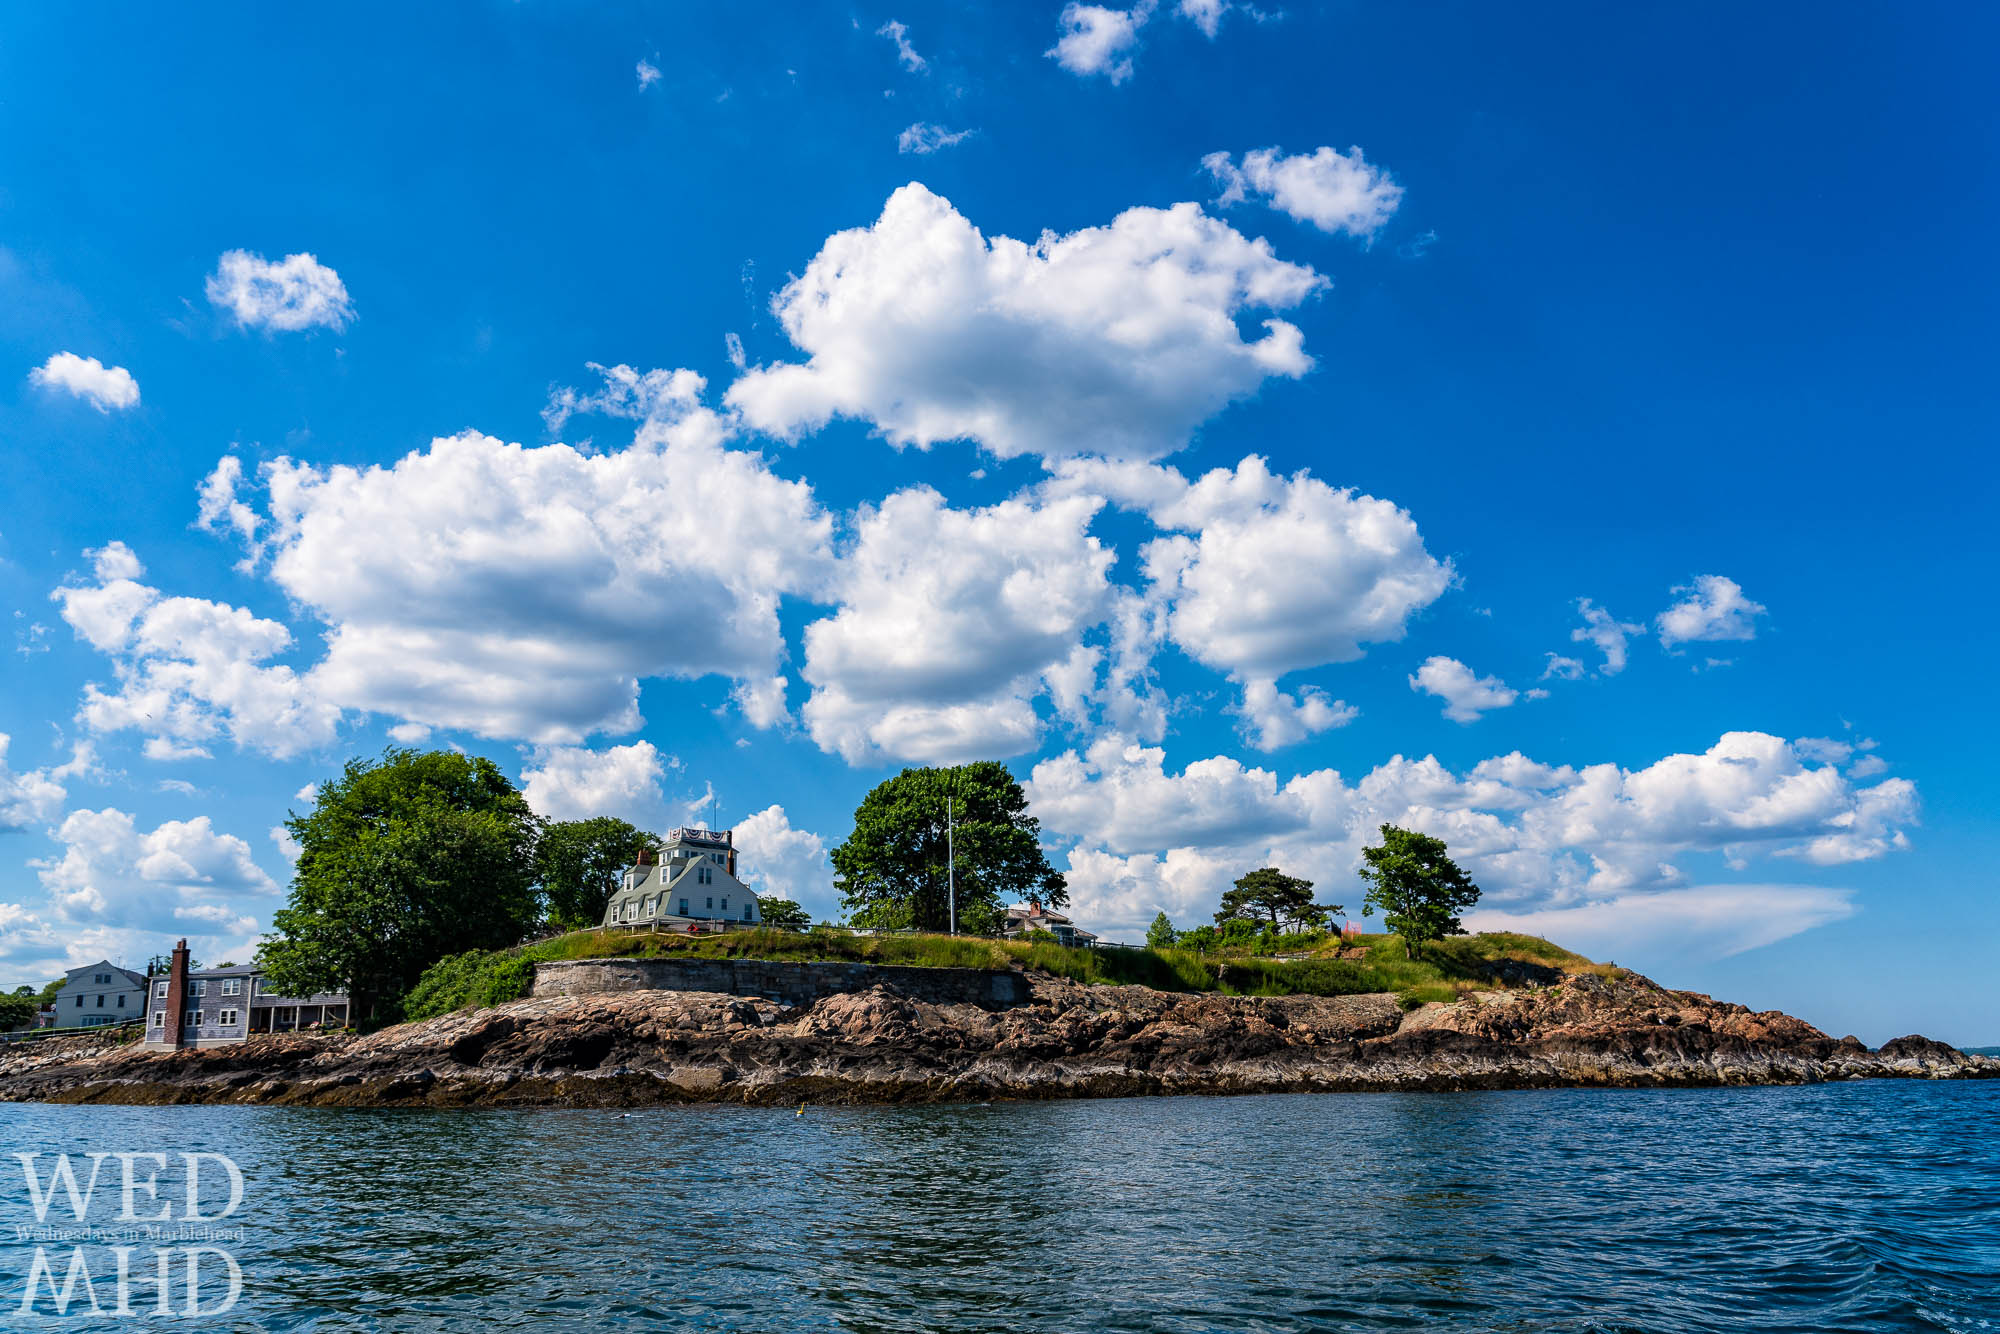 Making our way around the Fort on a warm summer day in Marblehead by way of a dinghy piloted by my daughter. Fort Sewall is undergoing major renovations.